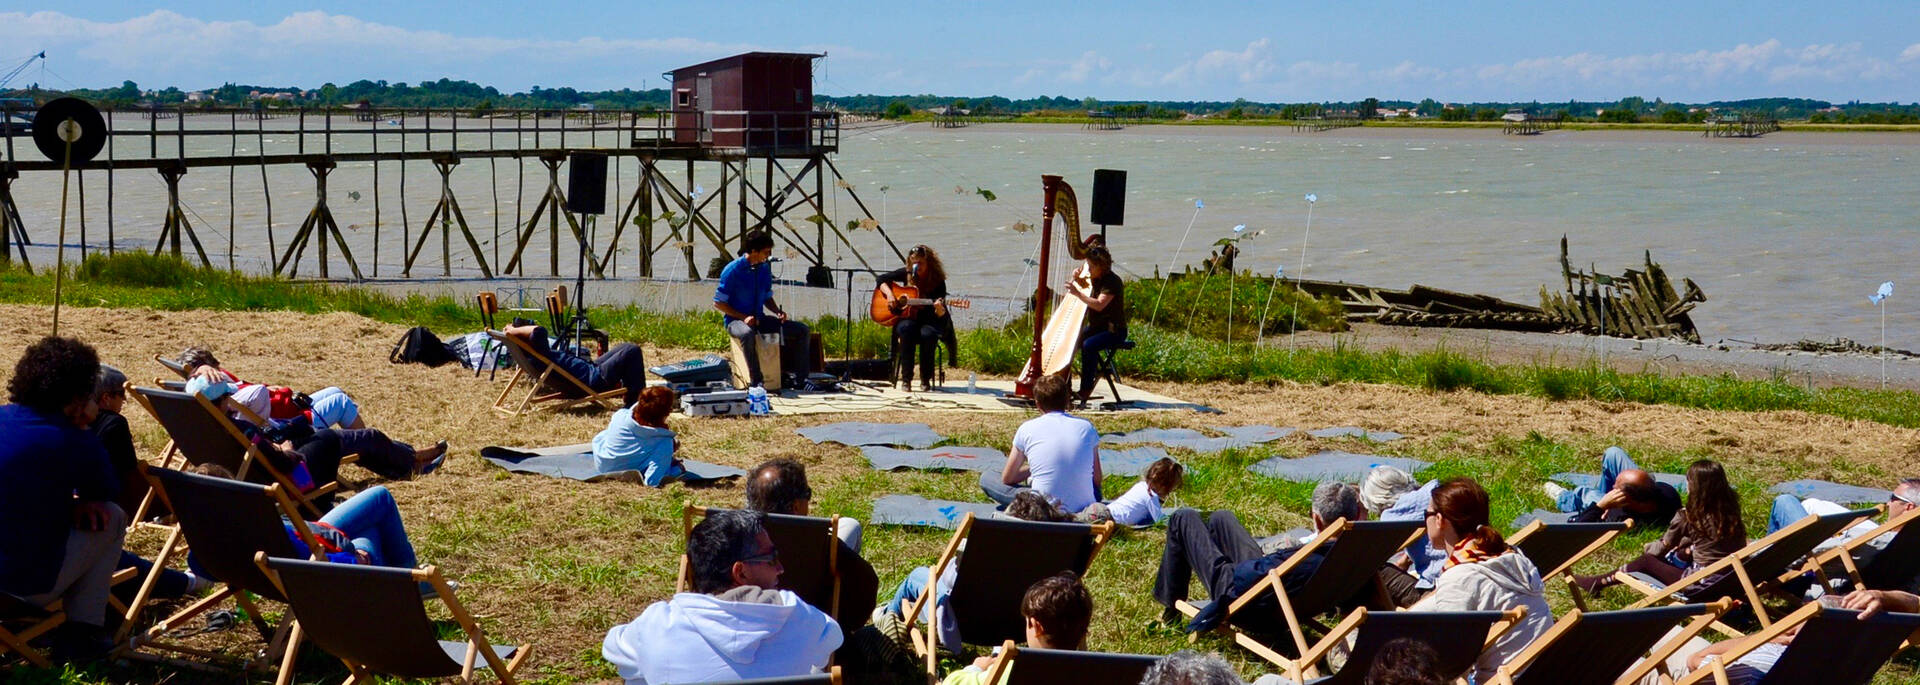 Musical show next to a fishing hut in Port-des-Barques - © Samuel Courtois